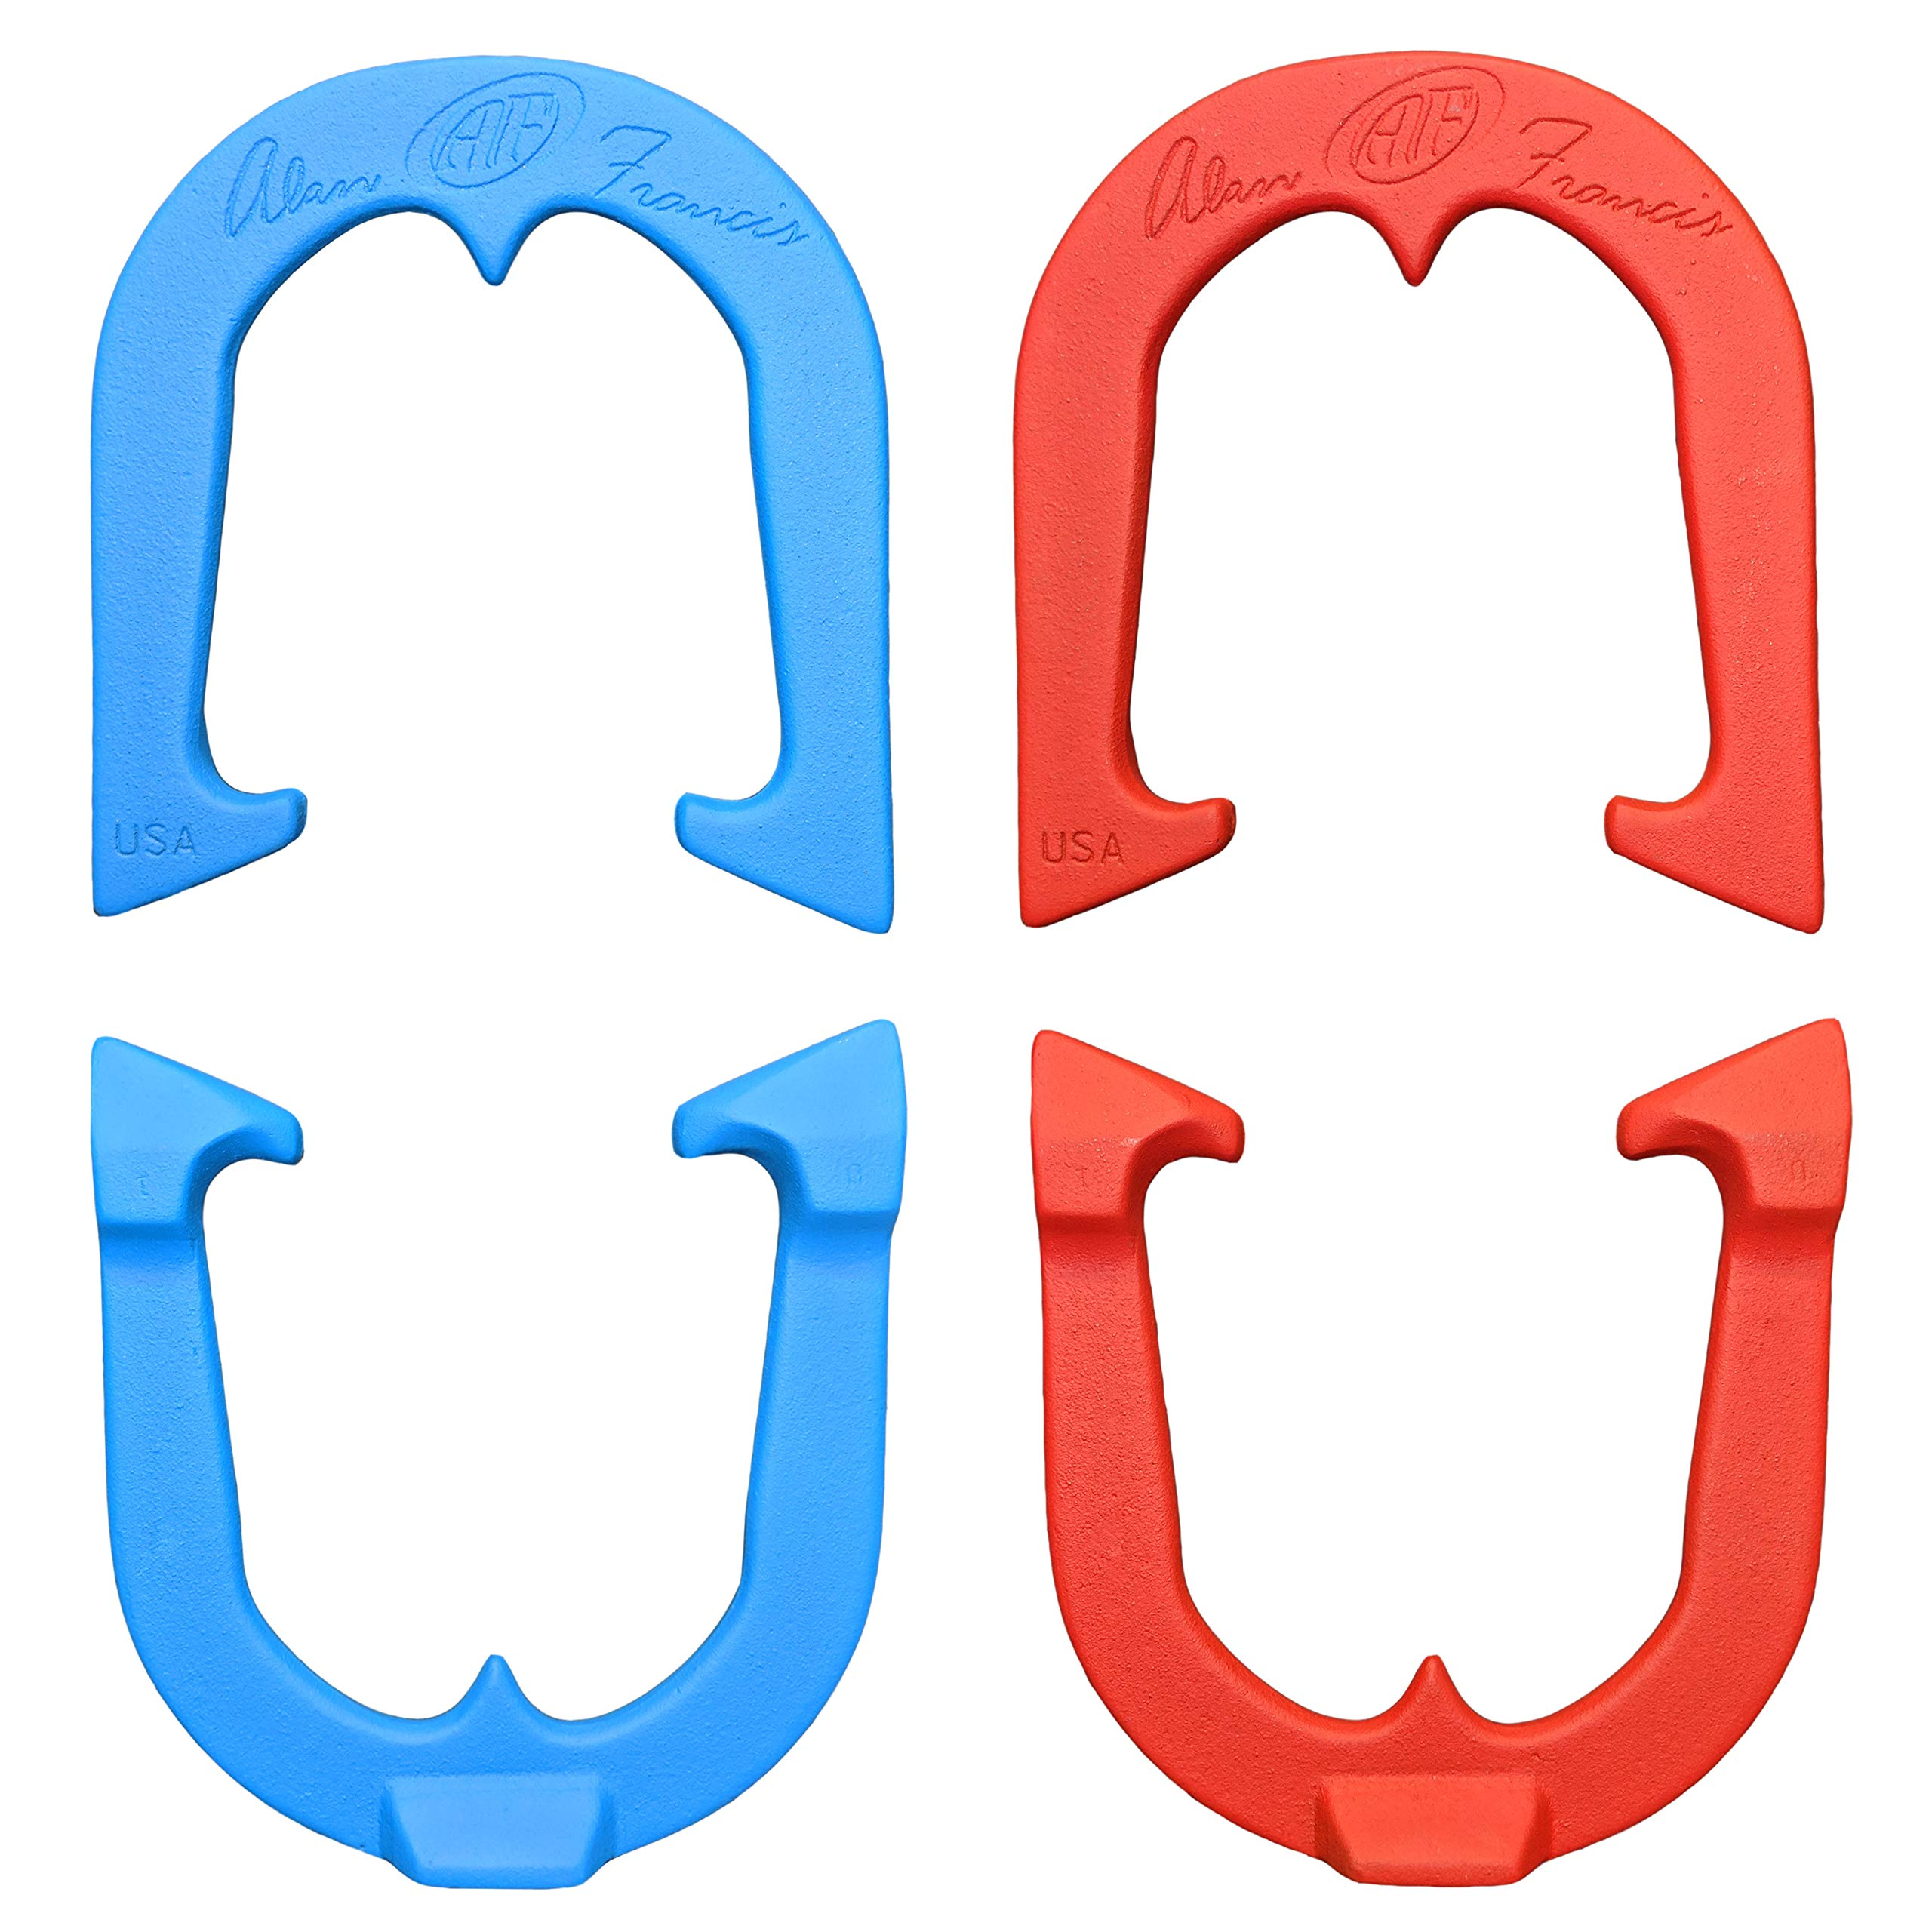 Alan Francis Signature Professional Pitching Horseshoes Set- Made n The USA! (Red & Blue- Two Pair Set (4 Shoes))